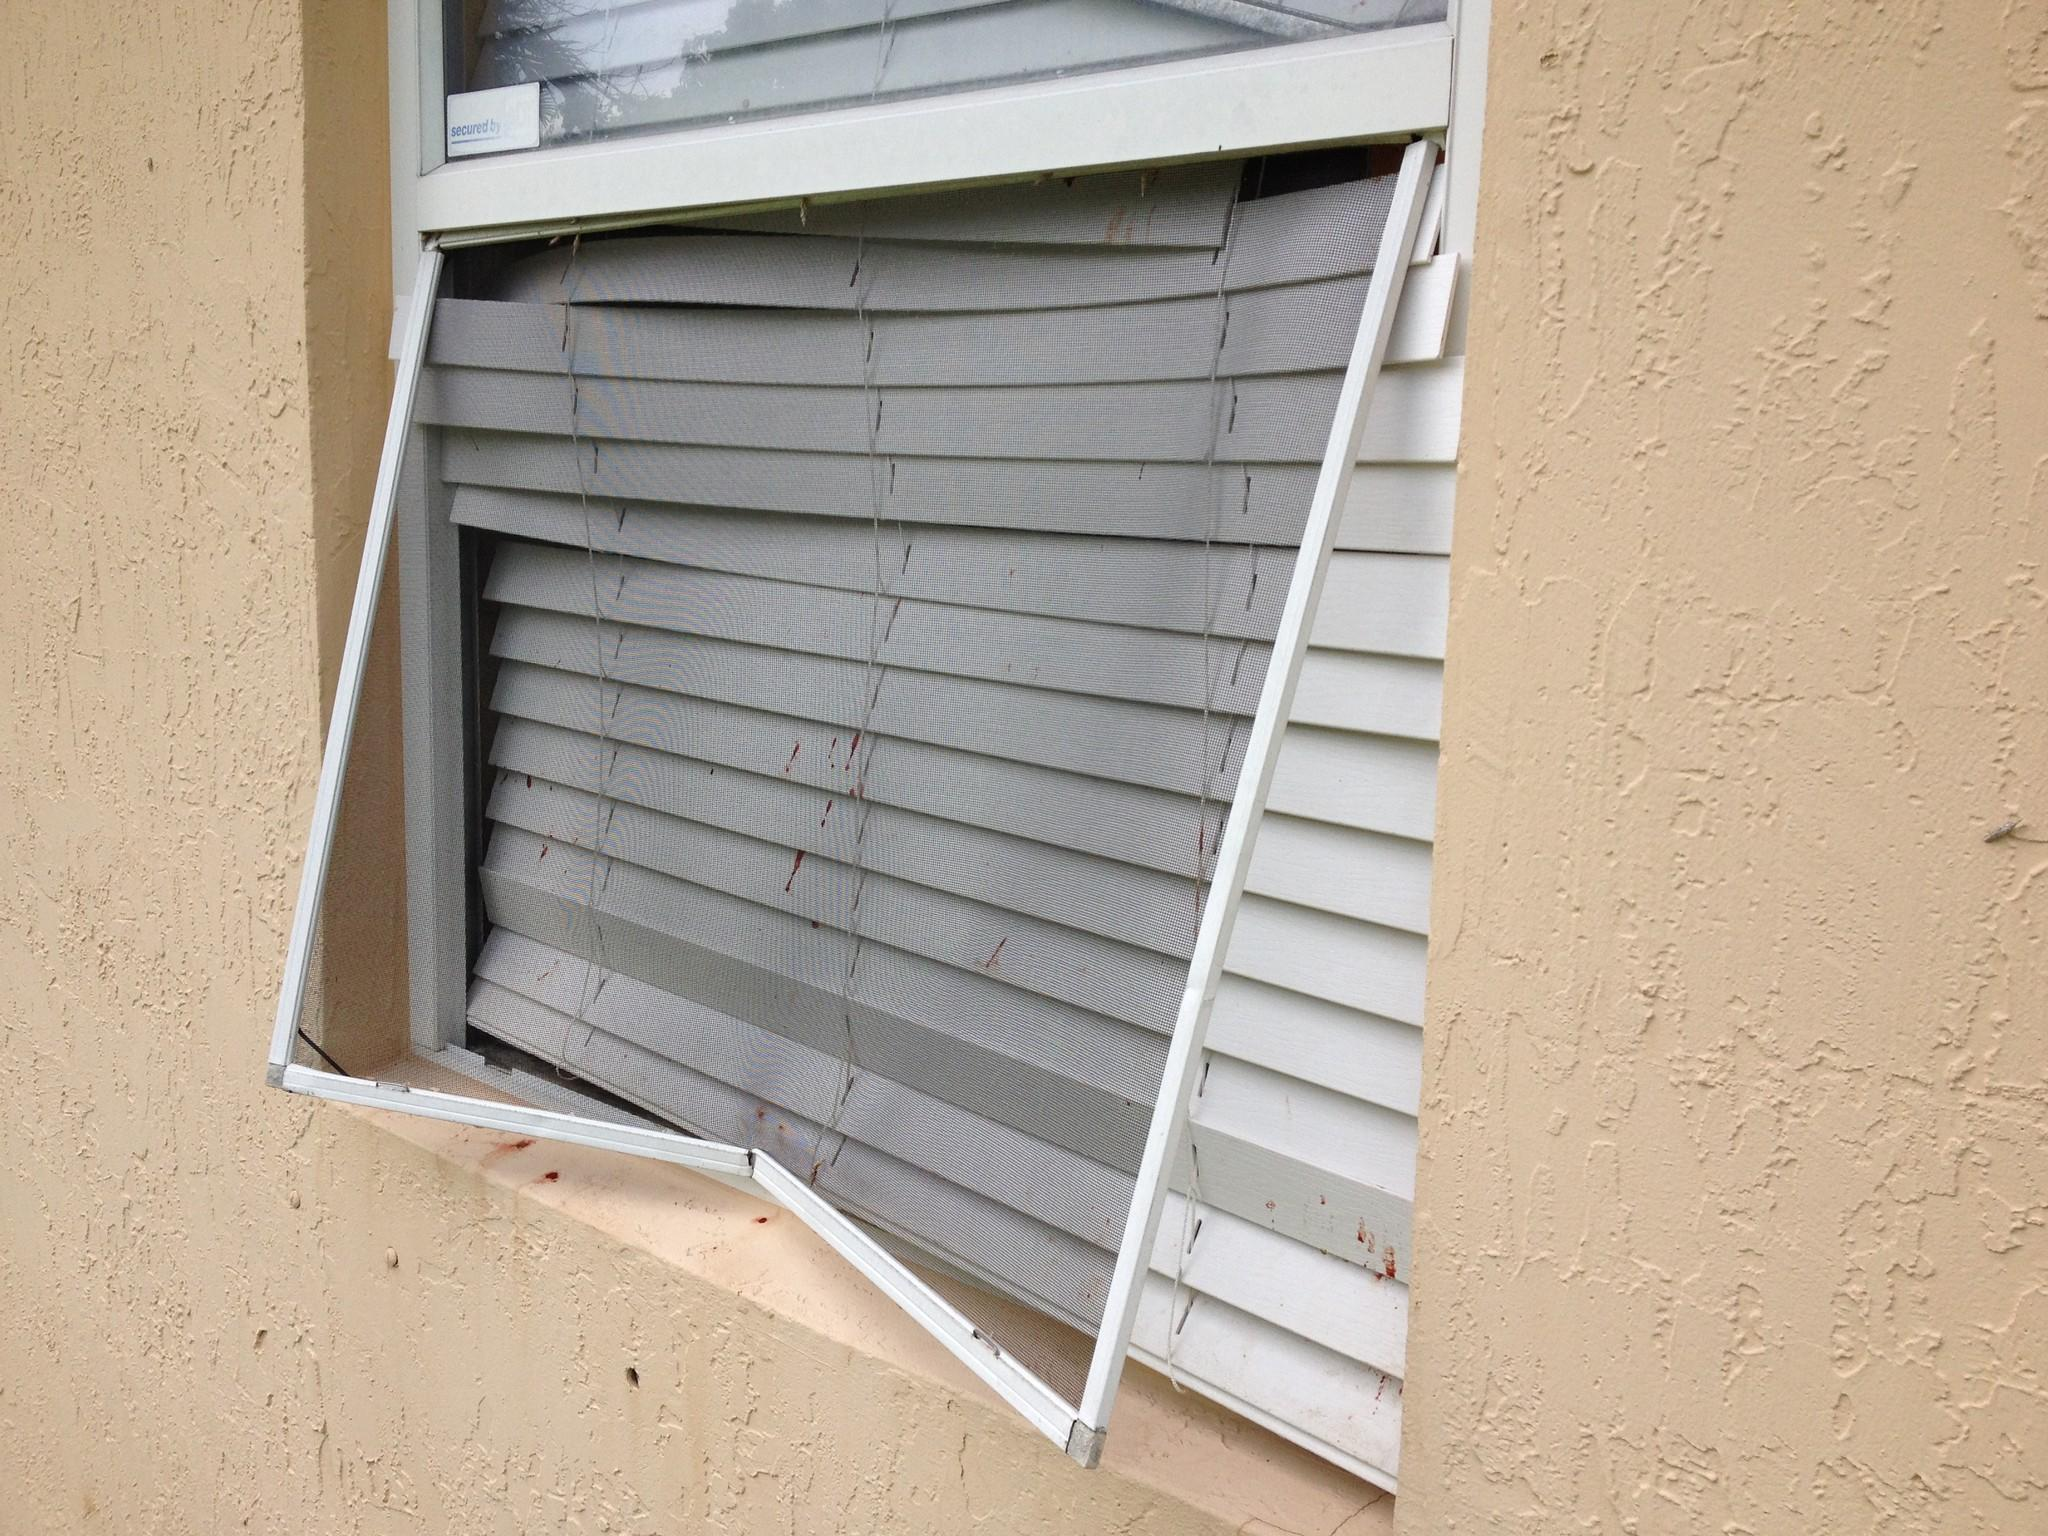 A Miramar man climbed through this now blood-spattered window to escape violent robbers who invaded his home.